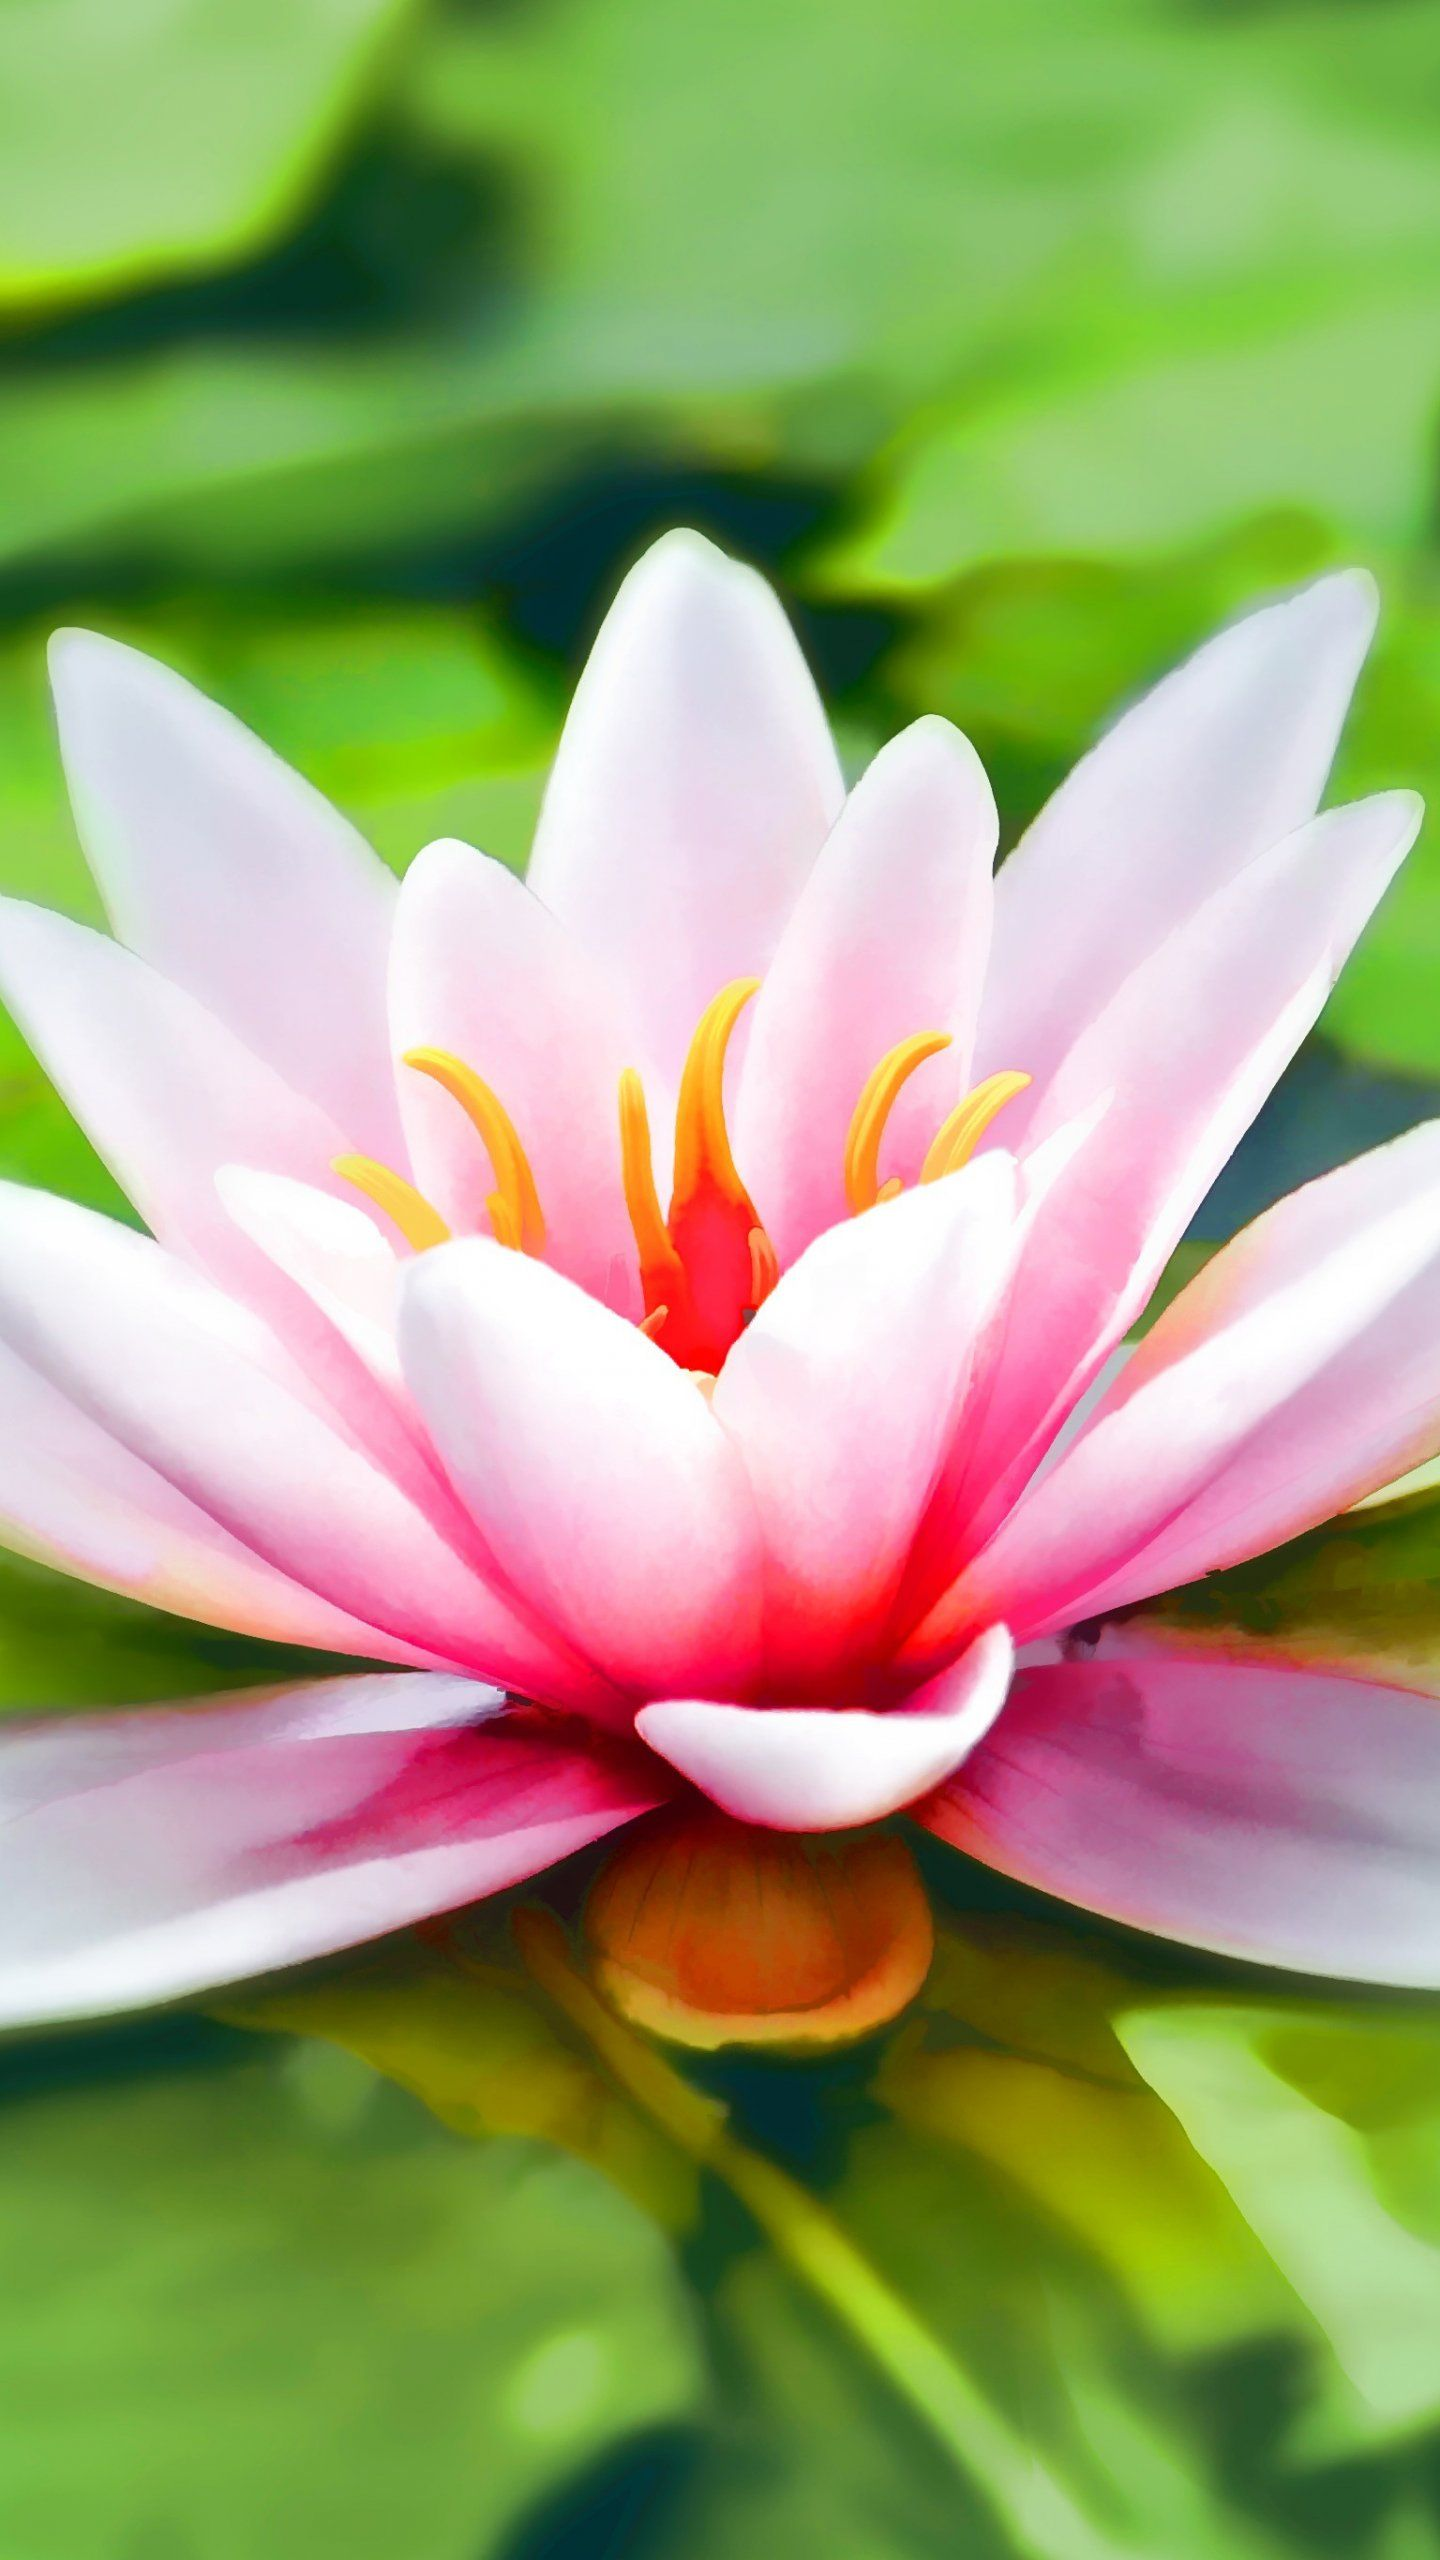 Water Lily Wallpaper Iphone Android Desktop Backgrounds